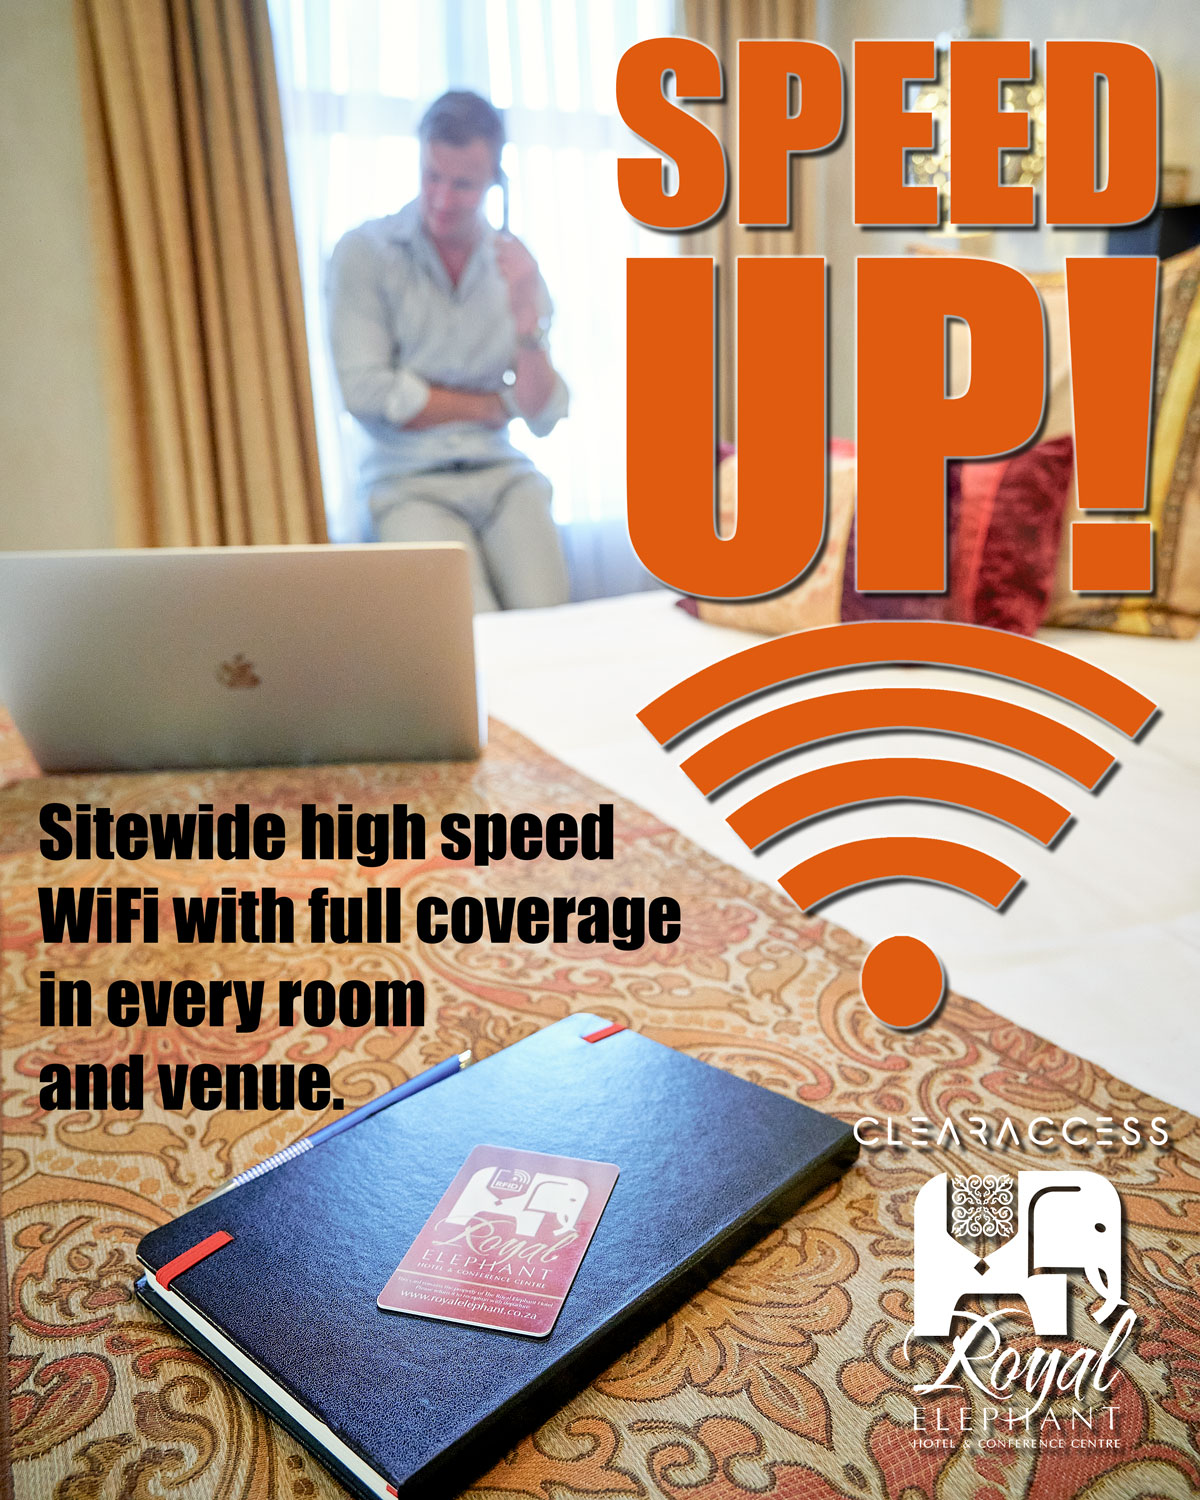 Upgraded Wifi and Internet Access at the Royal Elephant Hotel and Conference Centre